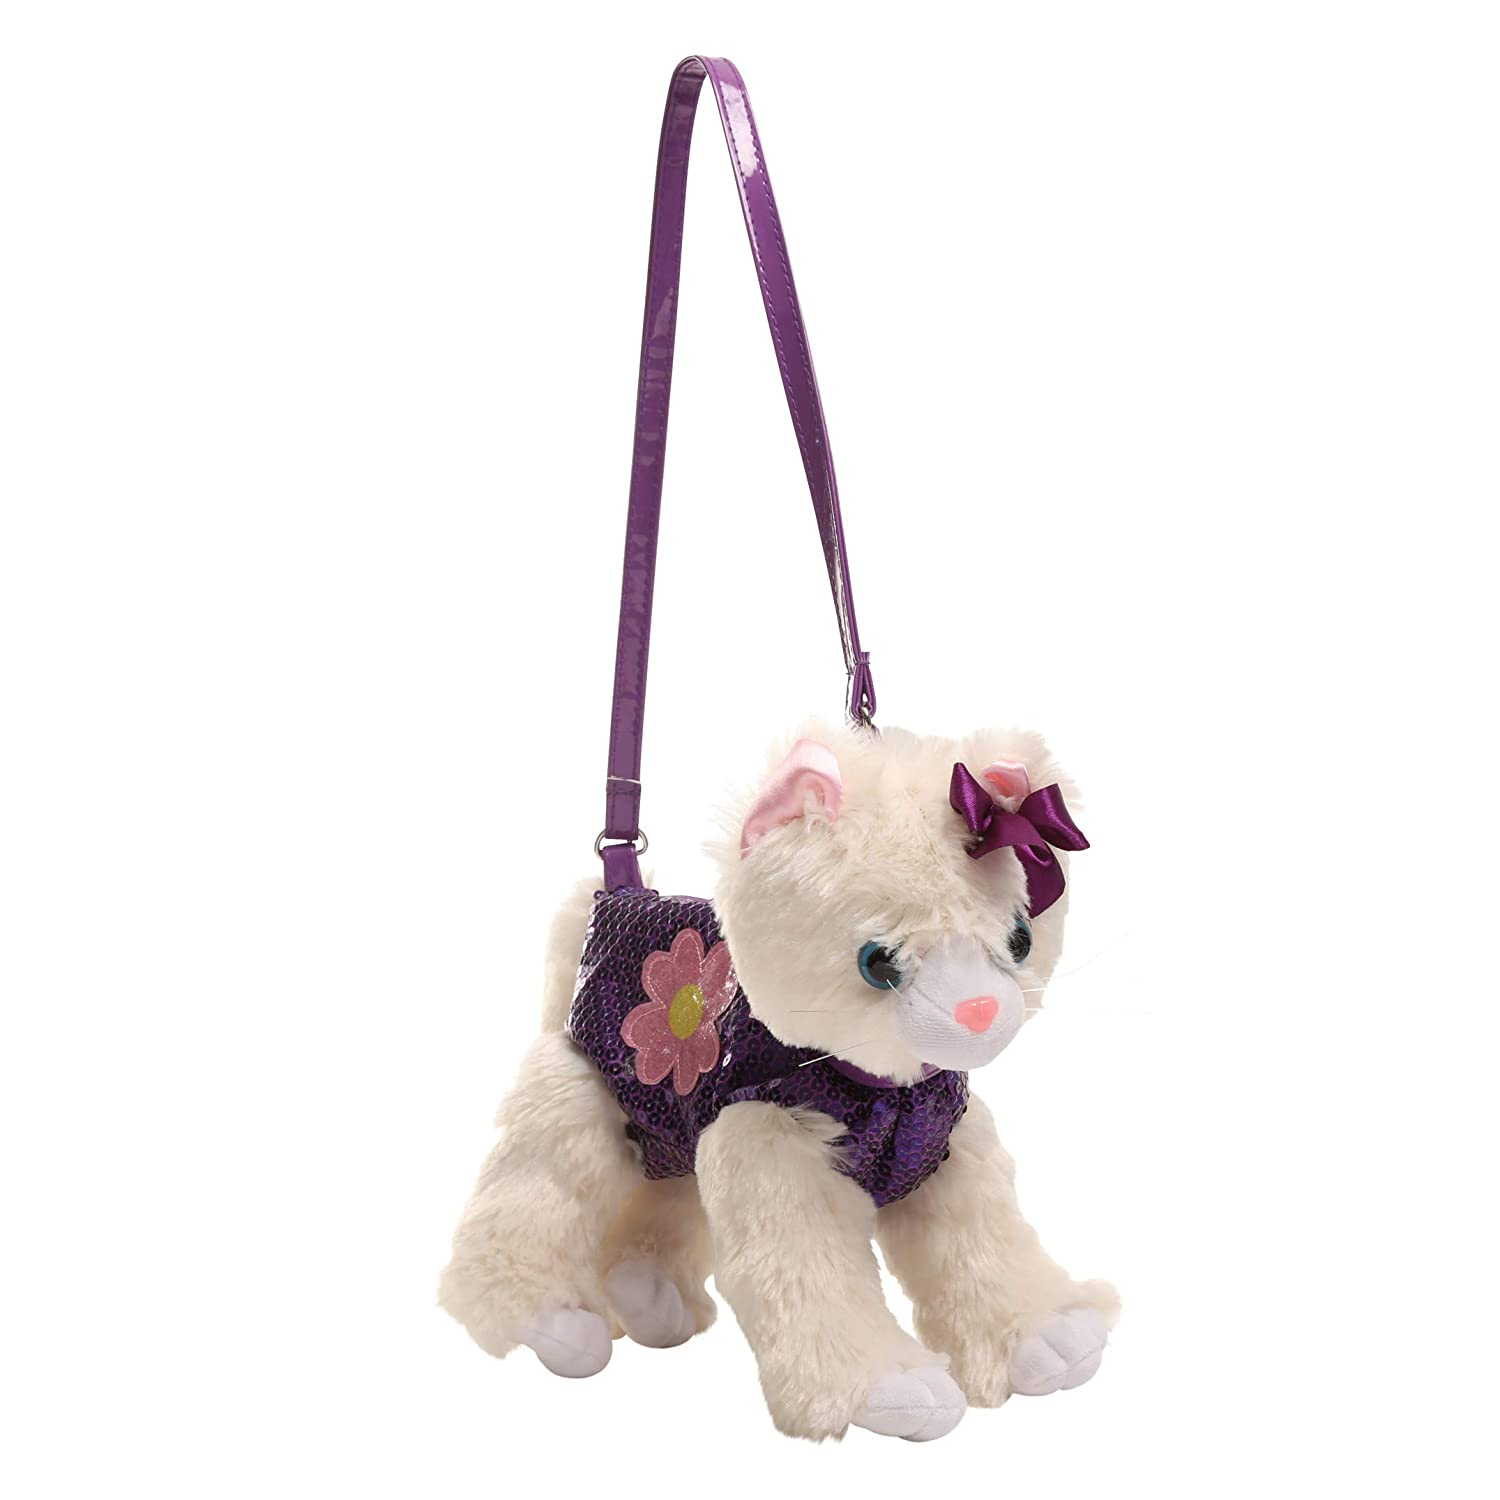 Poochie Poochie and Co Girls Plush Handbag Beige Cat with Purple Sequins and Flower Glitter Applique Cudlie Accessories PC23297